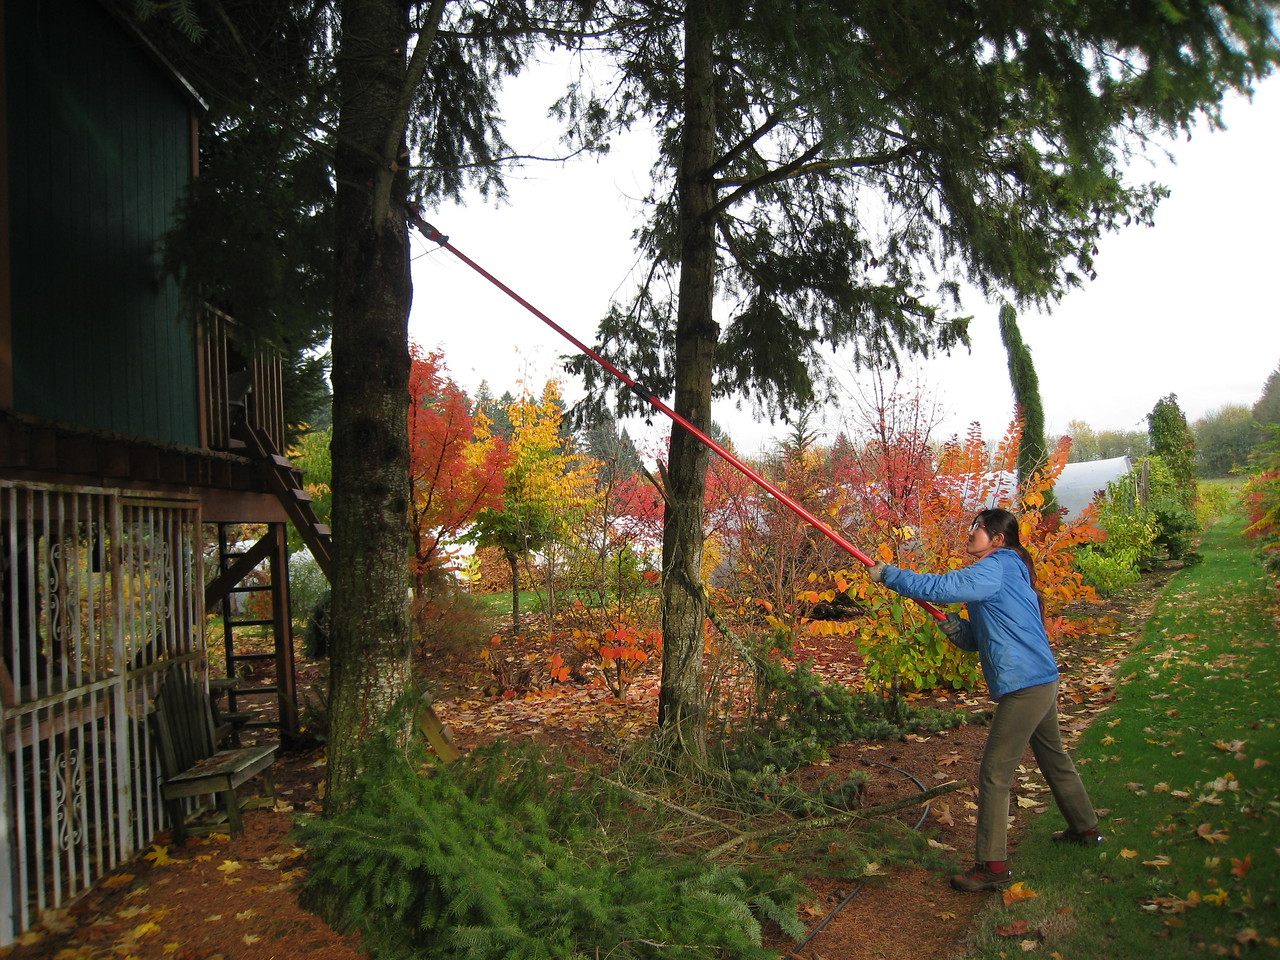 Chiyoko working hard pruning the bottom branches off the fir trees around the tree house.